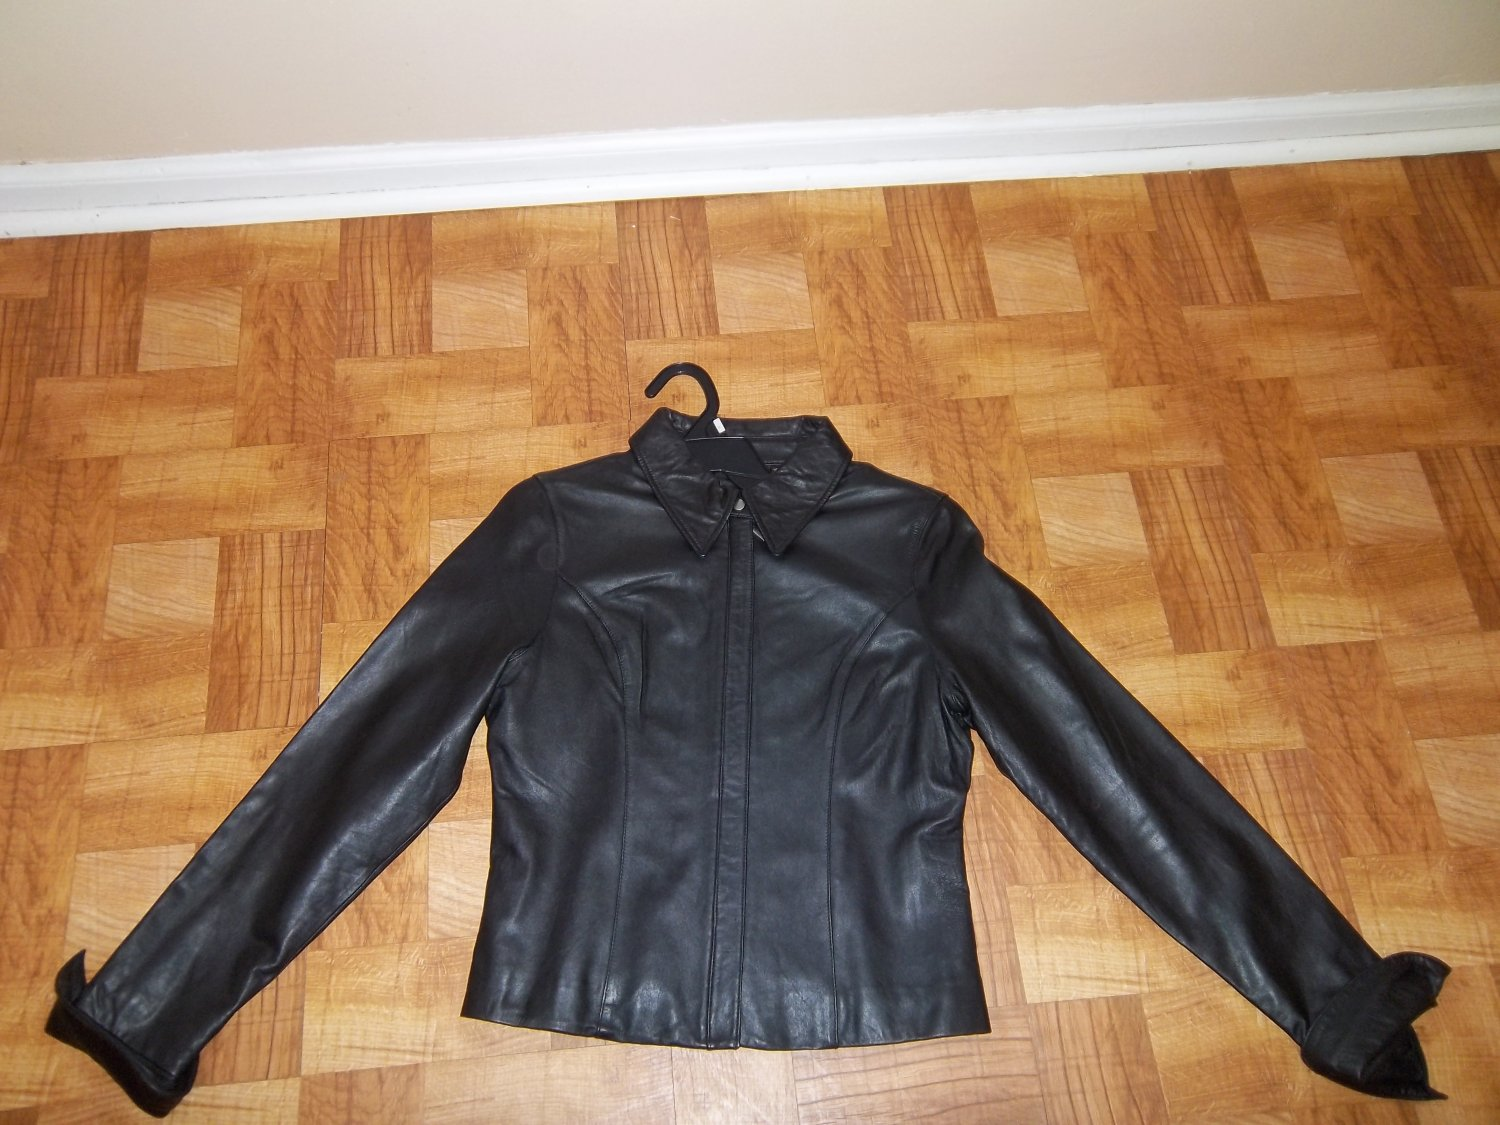 NEW WOMEN'S TRENDY BLACK GENUINE LEATHER FORM FITTING WAIST LENGTH JACKET (SIZE MEDIUM)